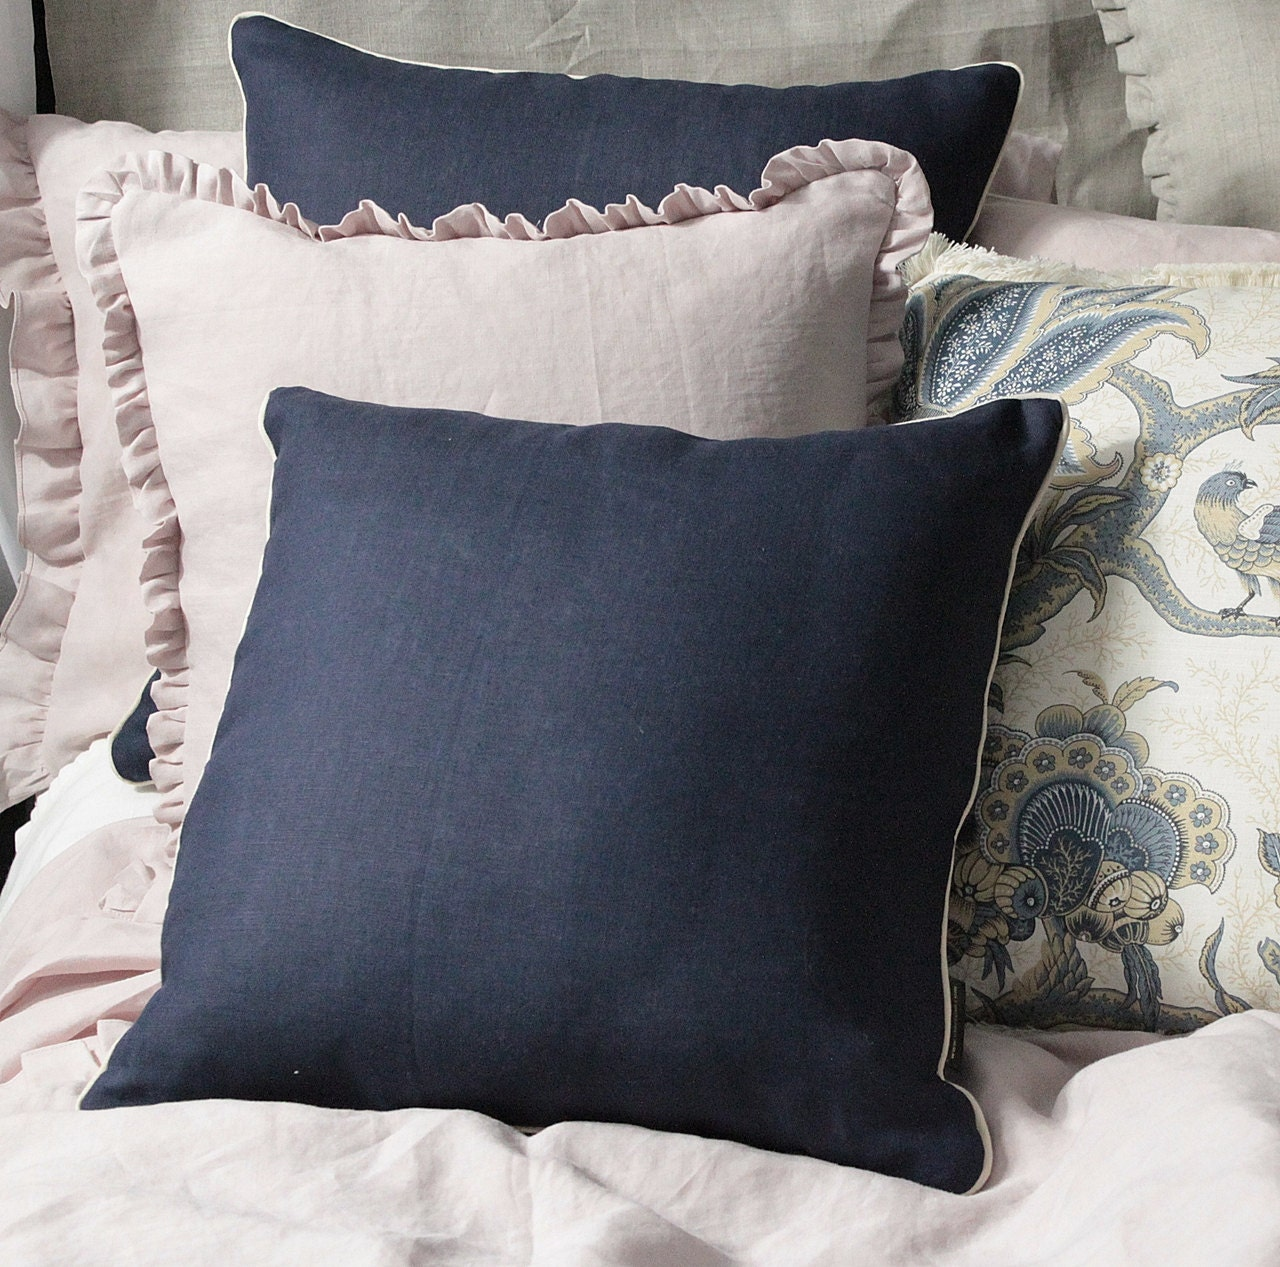 Decorative Pillow Trim : Linen Navy pillow case with golden trim decorative pillow